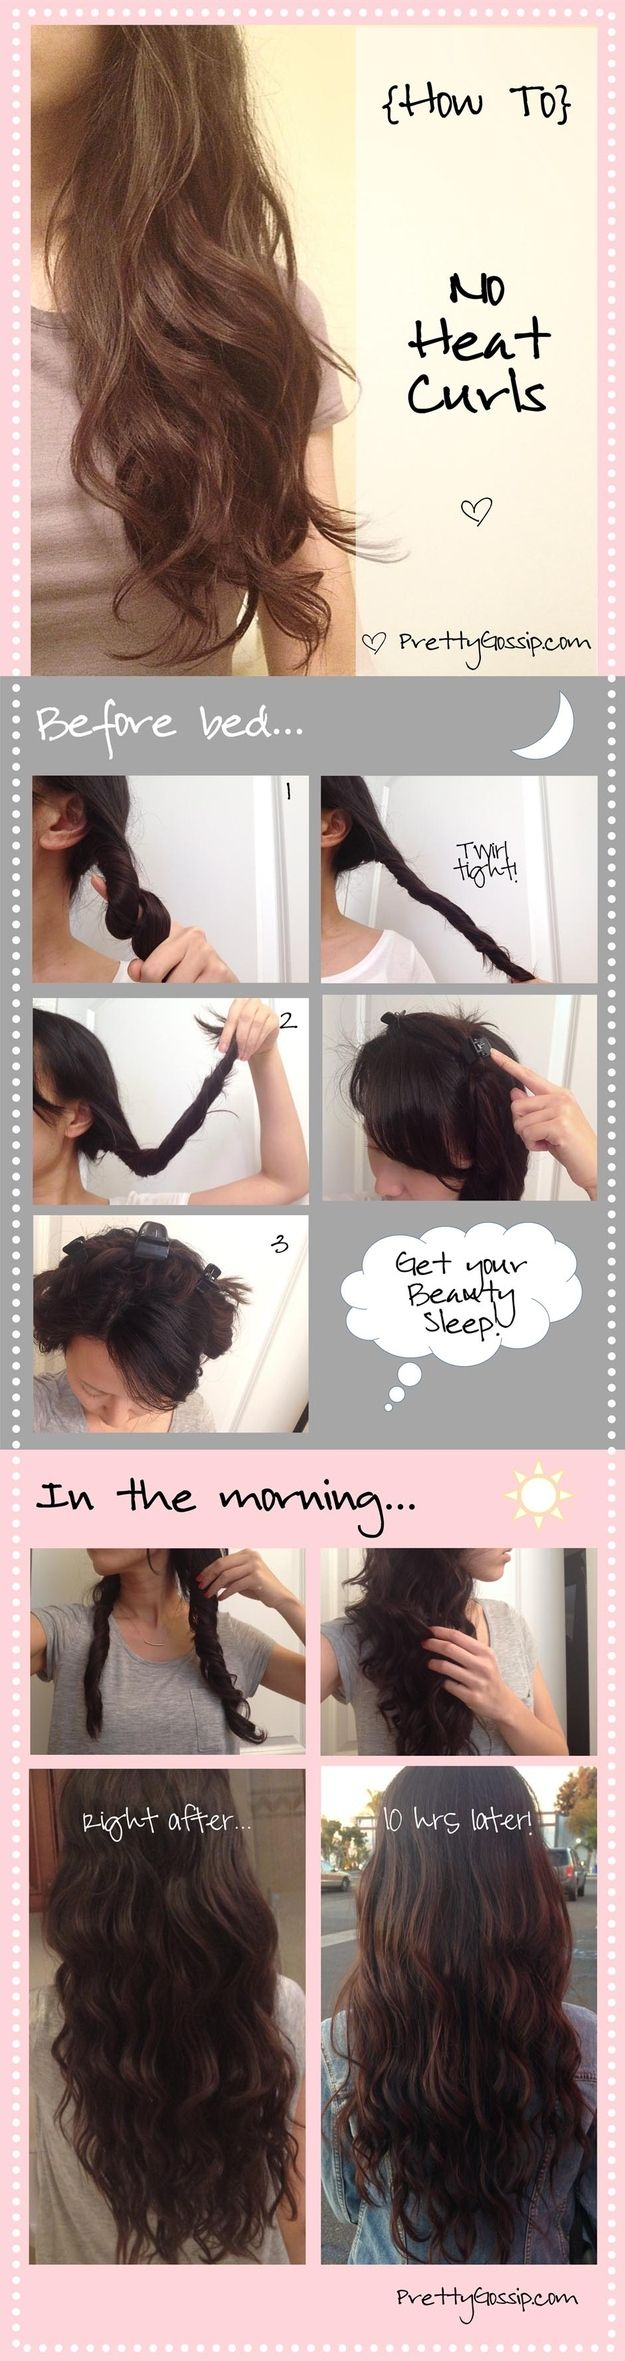 Or you can get these perfect spirals by doing a one-minute prep the night before.